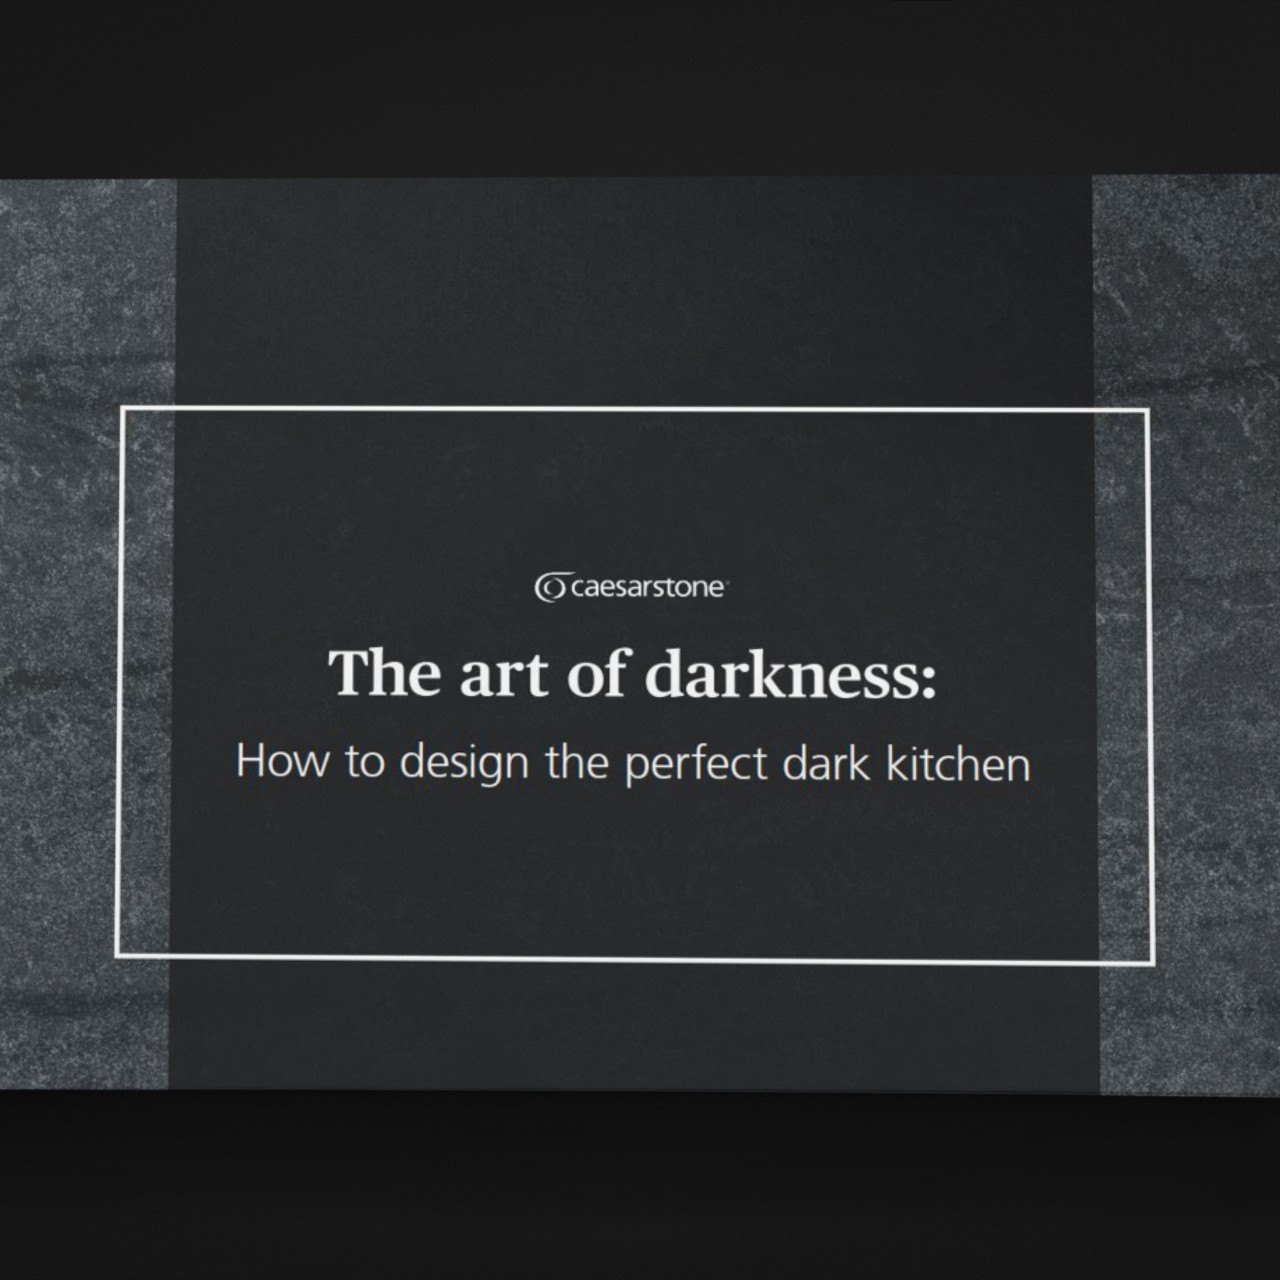 The art of darkness: How to design the perfect dark kitchen